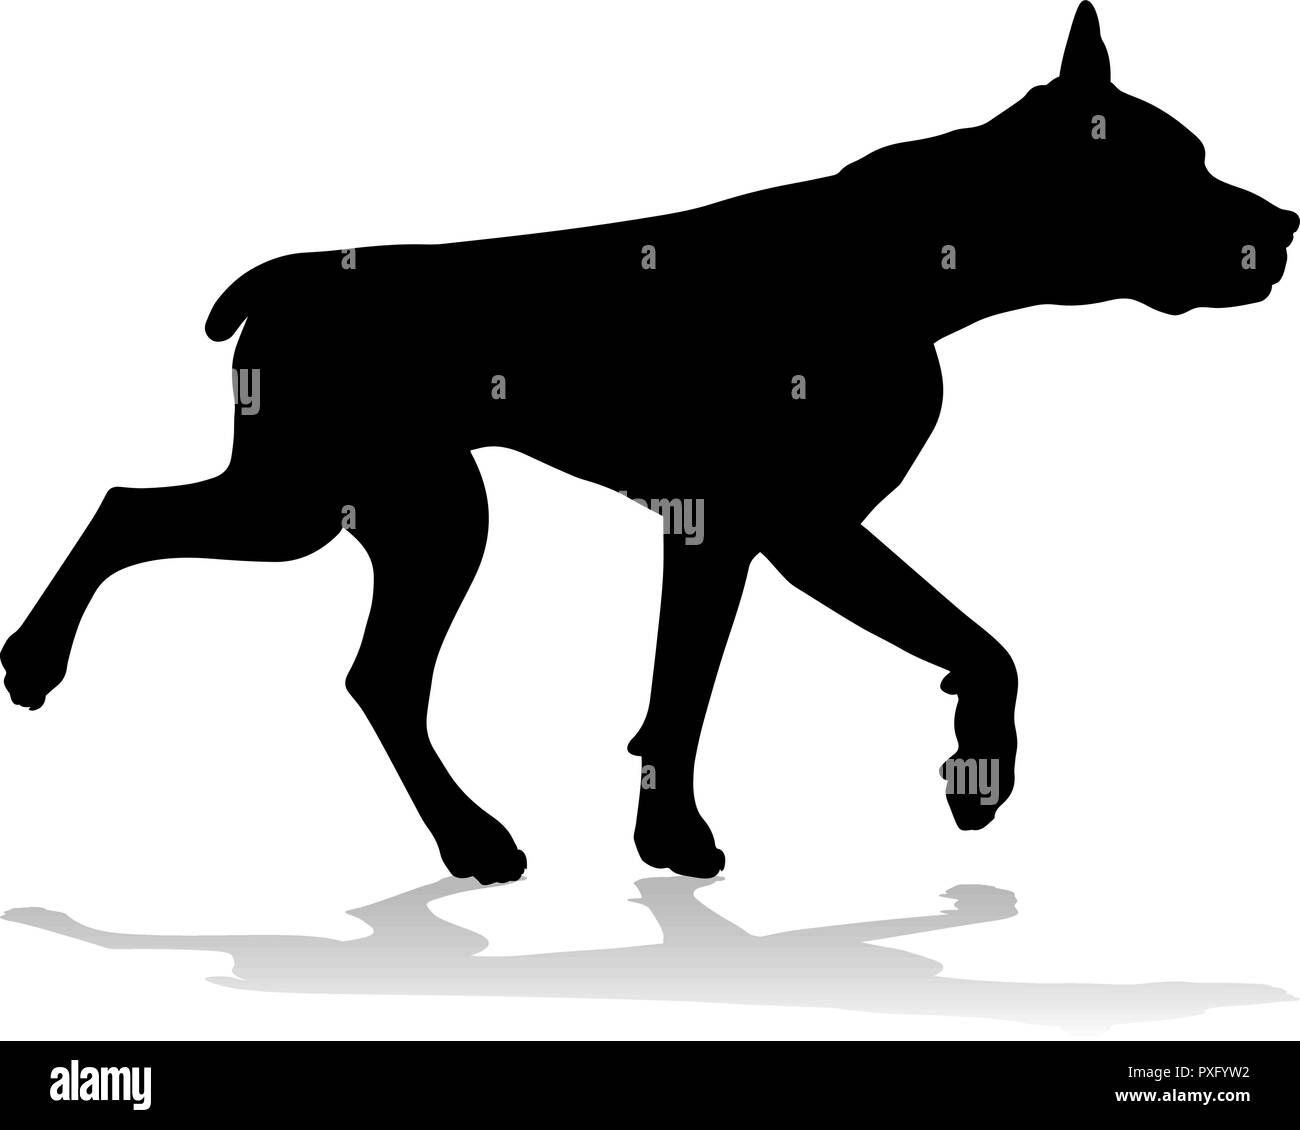 Dog Silhouette Pet Animal - Stock Image